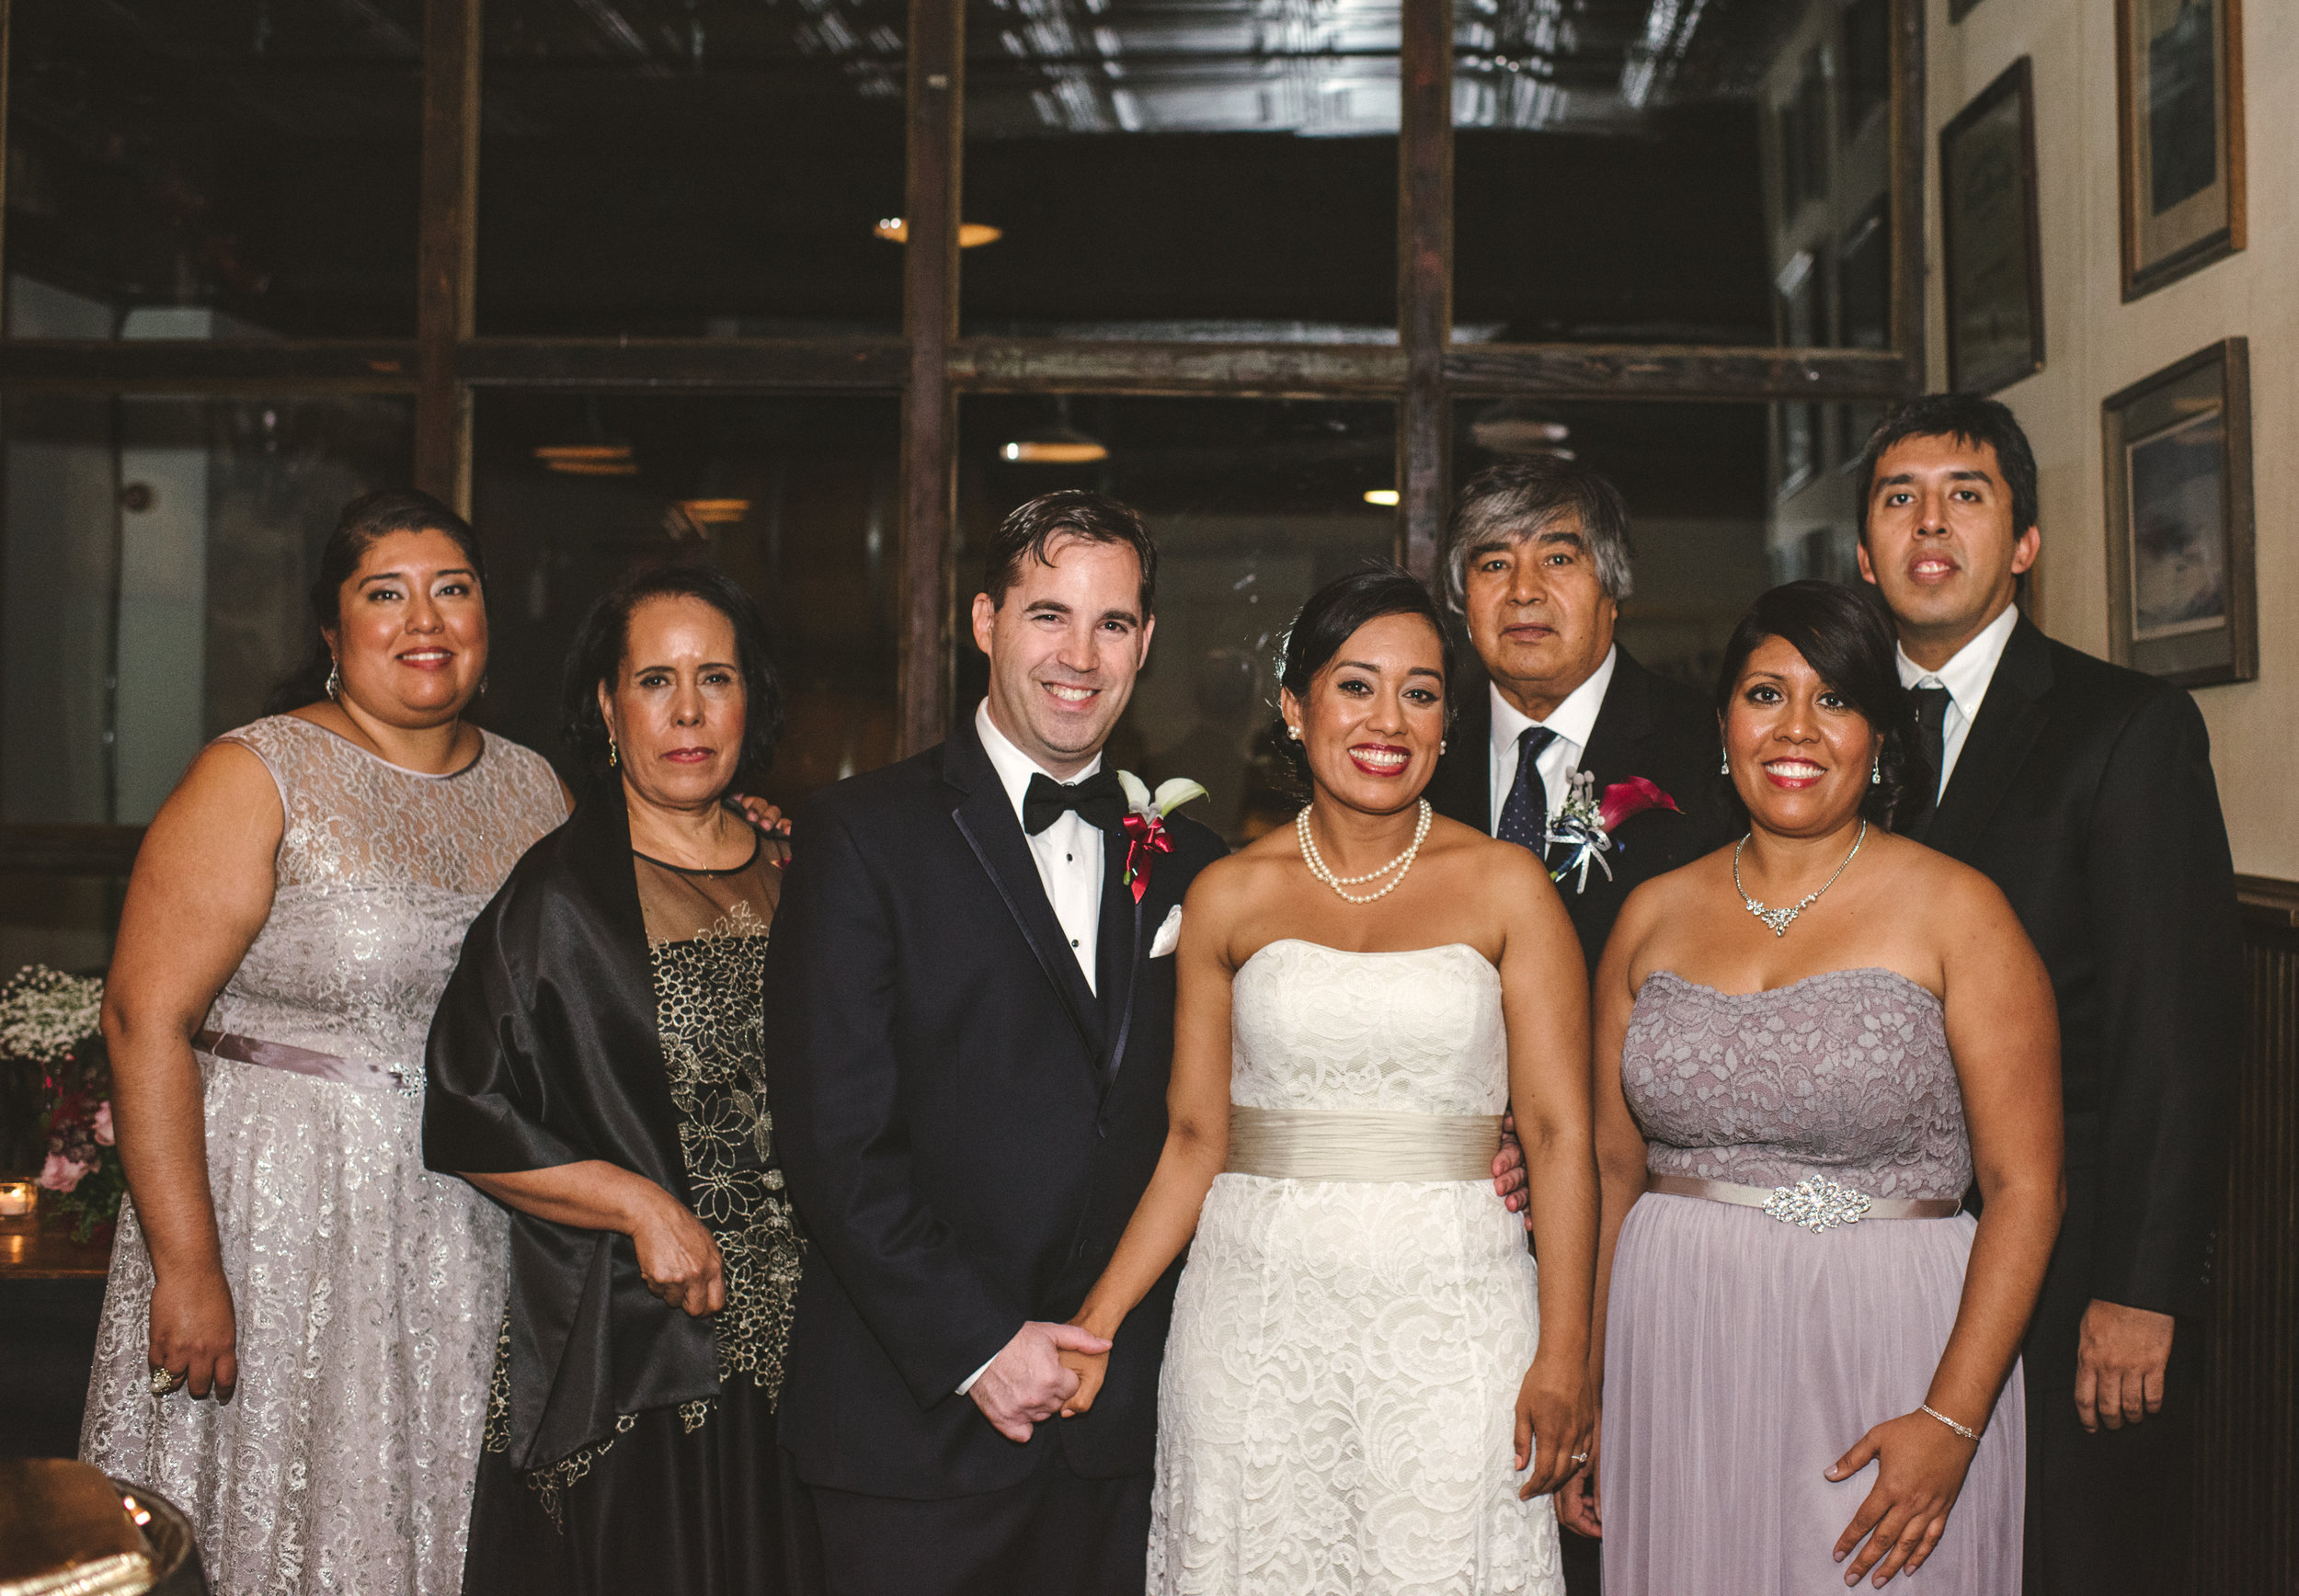 BROOKLYN WINERY WEDDING - TWOTWENTY by CHI-CHI AGBIM-201.jpg